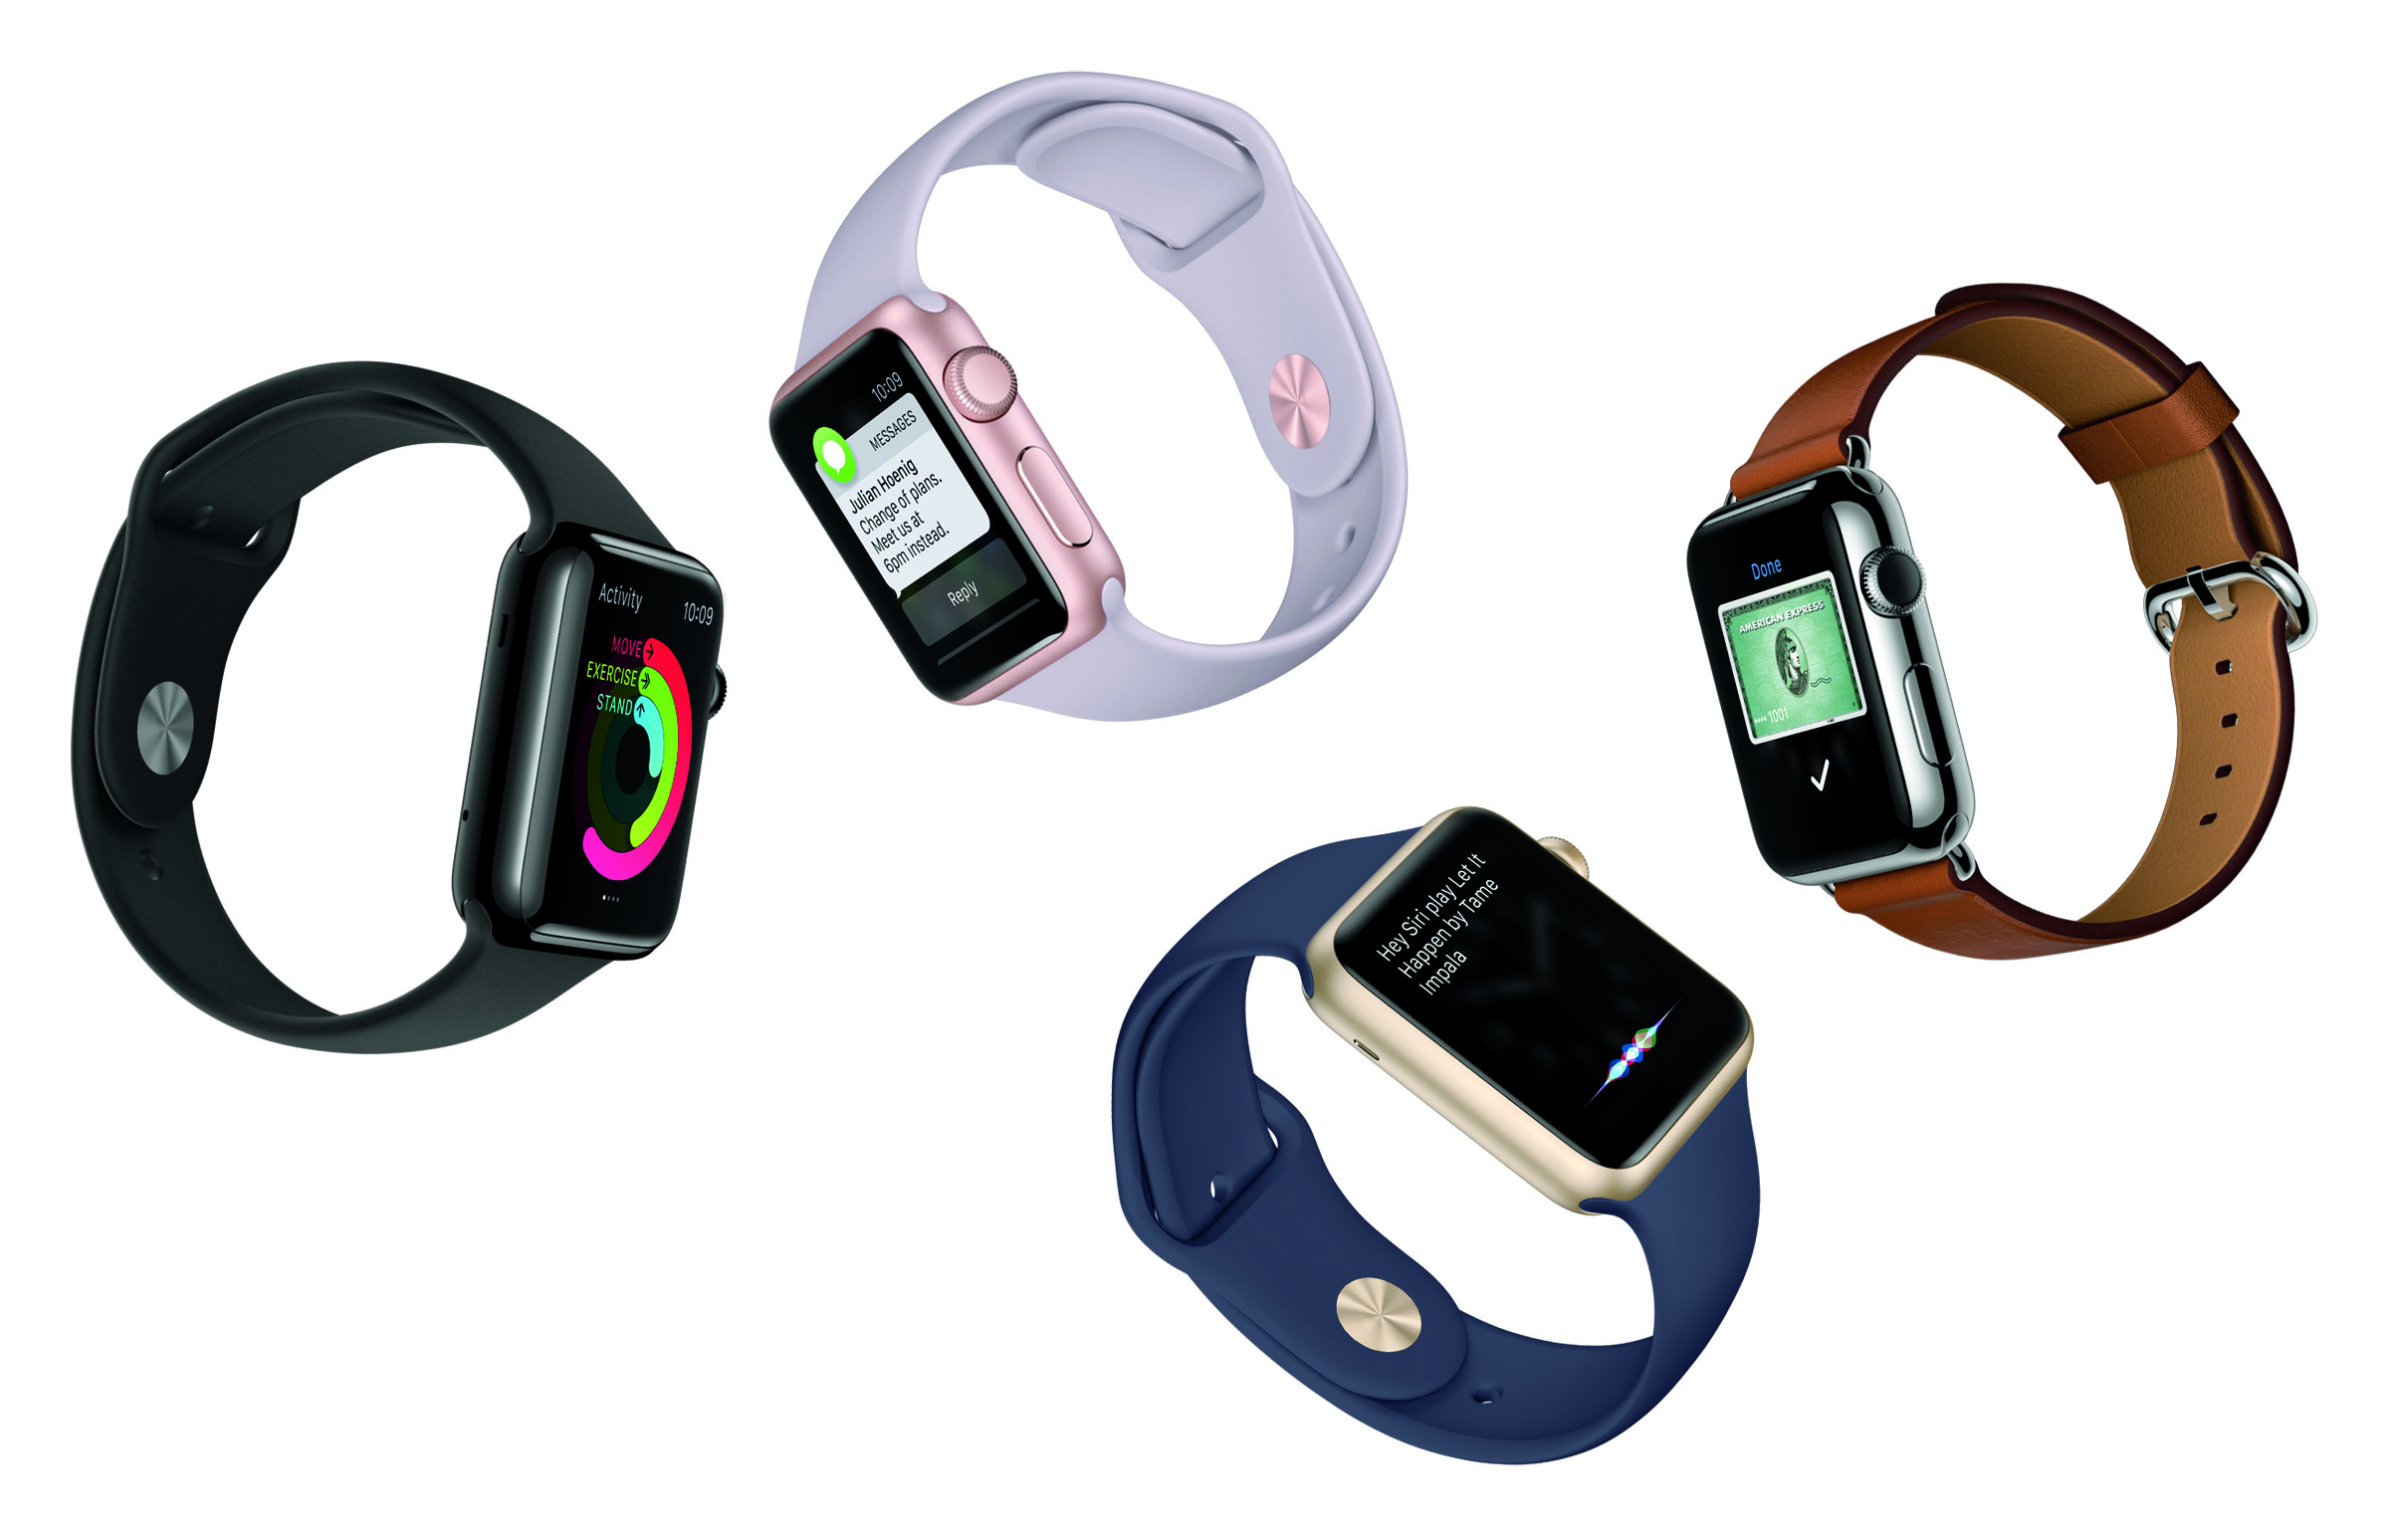 WatchOS 2 with native apps and new gold and rose gold aluminum Apple Watch sport models